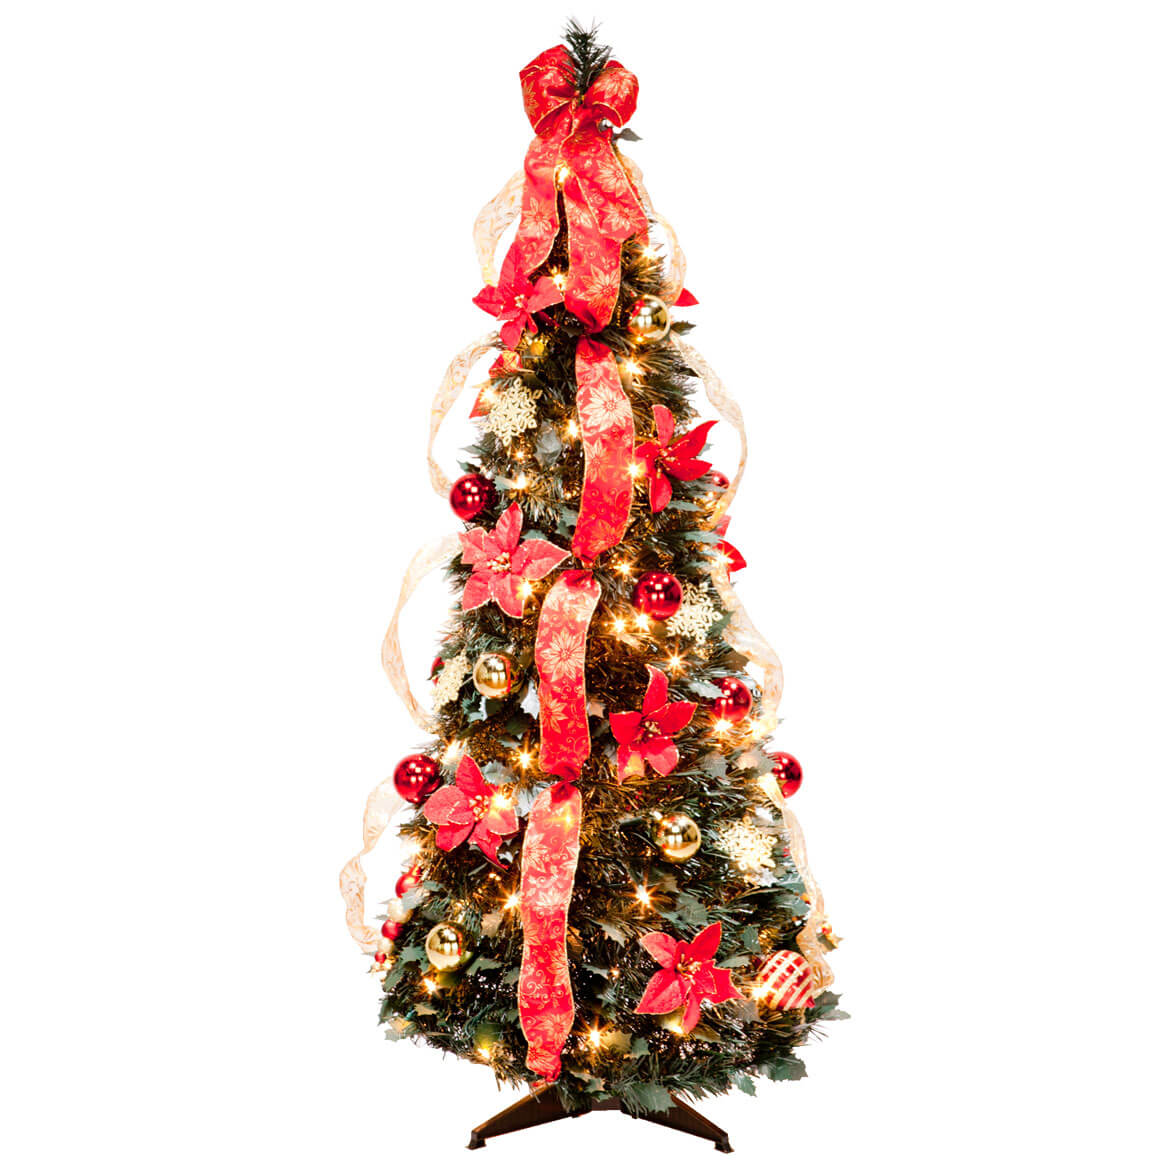 4 ft pull up fully decorated prelit poinsettia tree by northwoods - Pull Up Christmas Trees Decorated